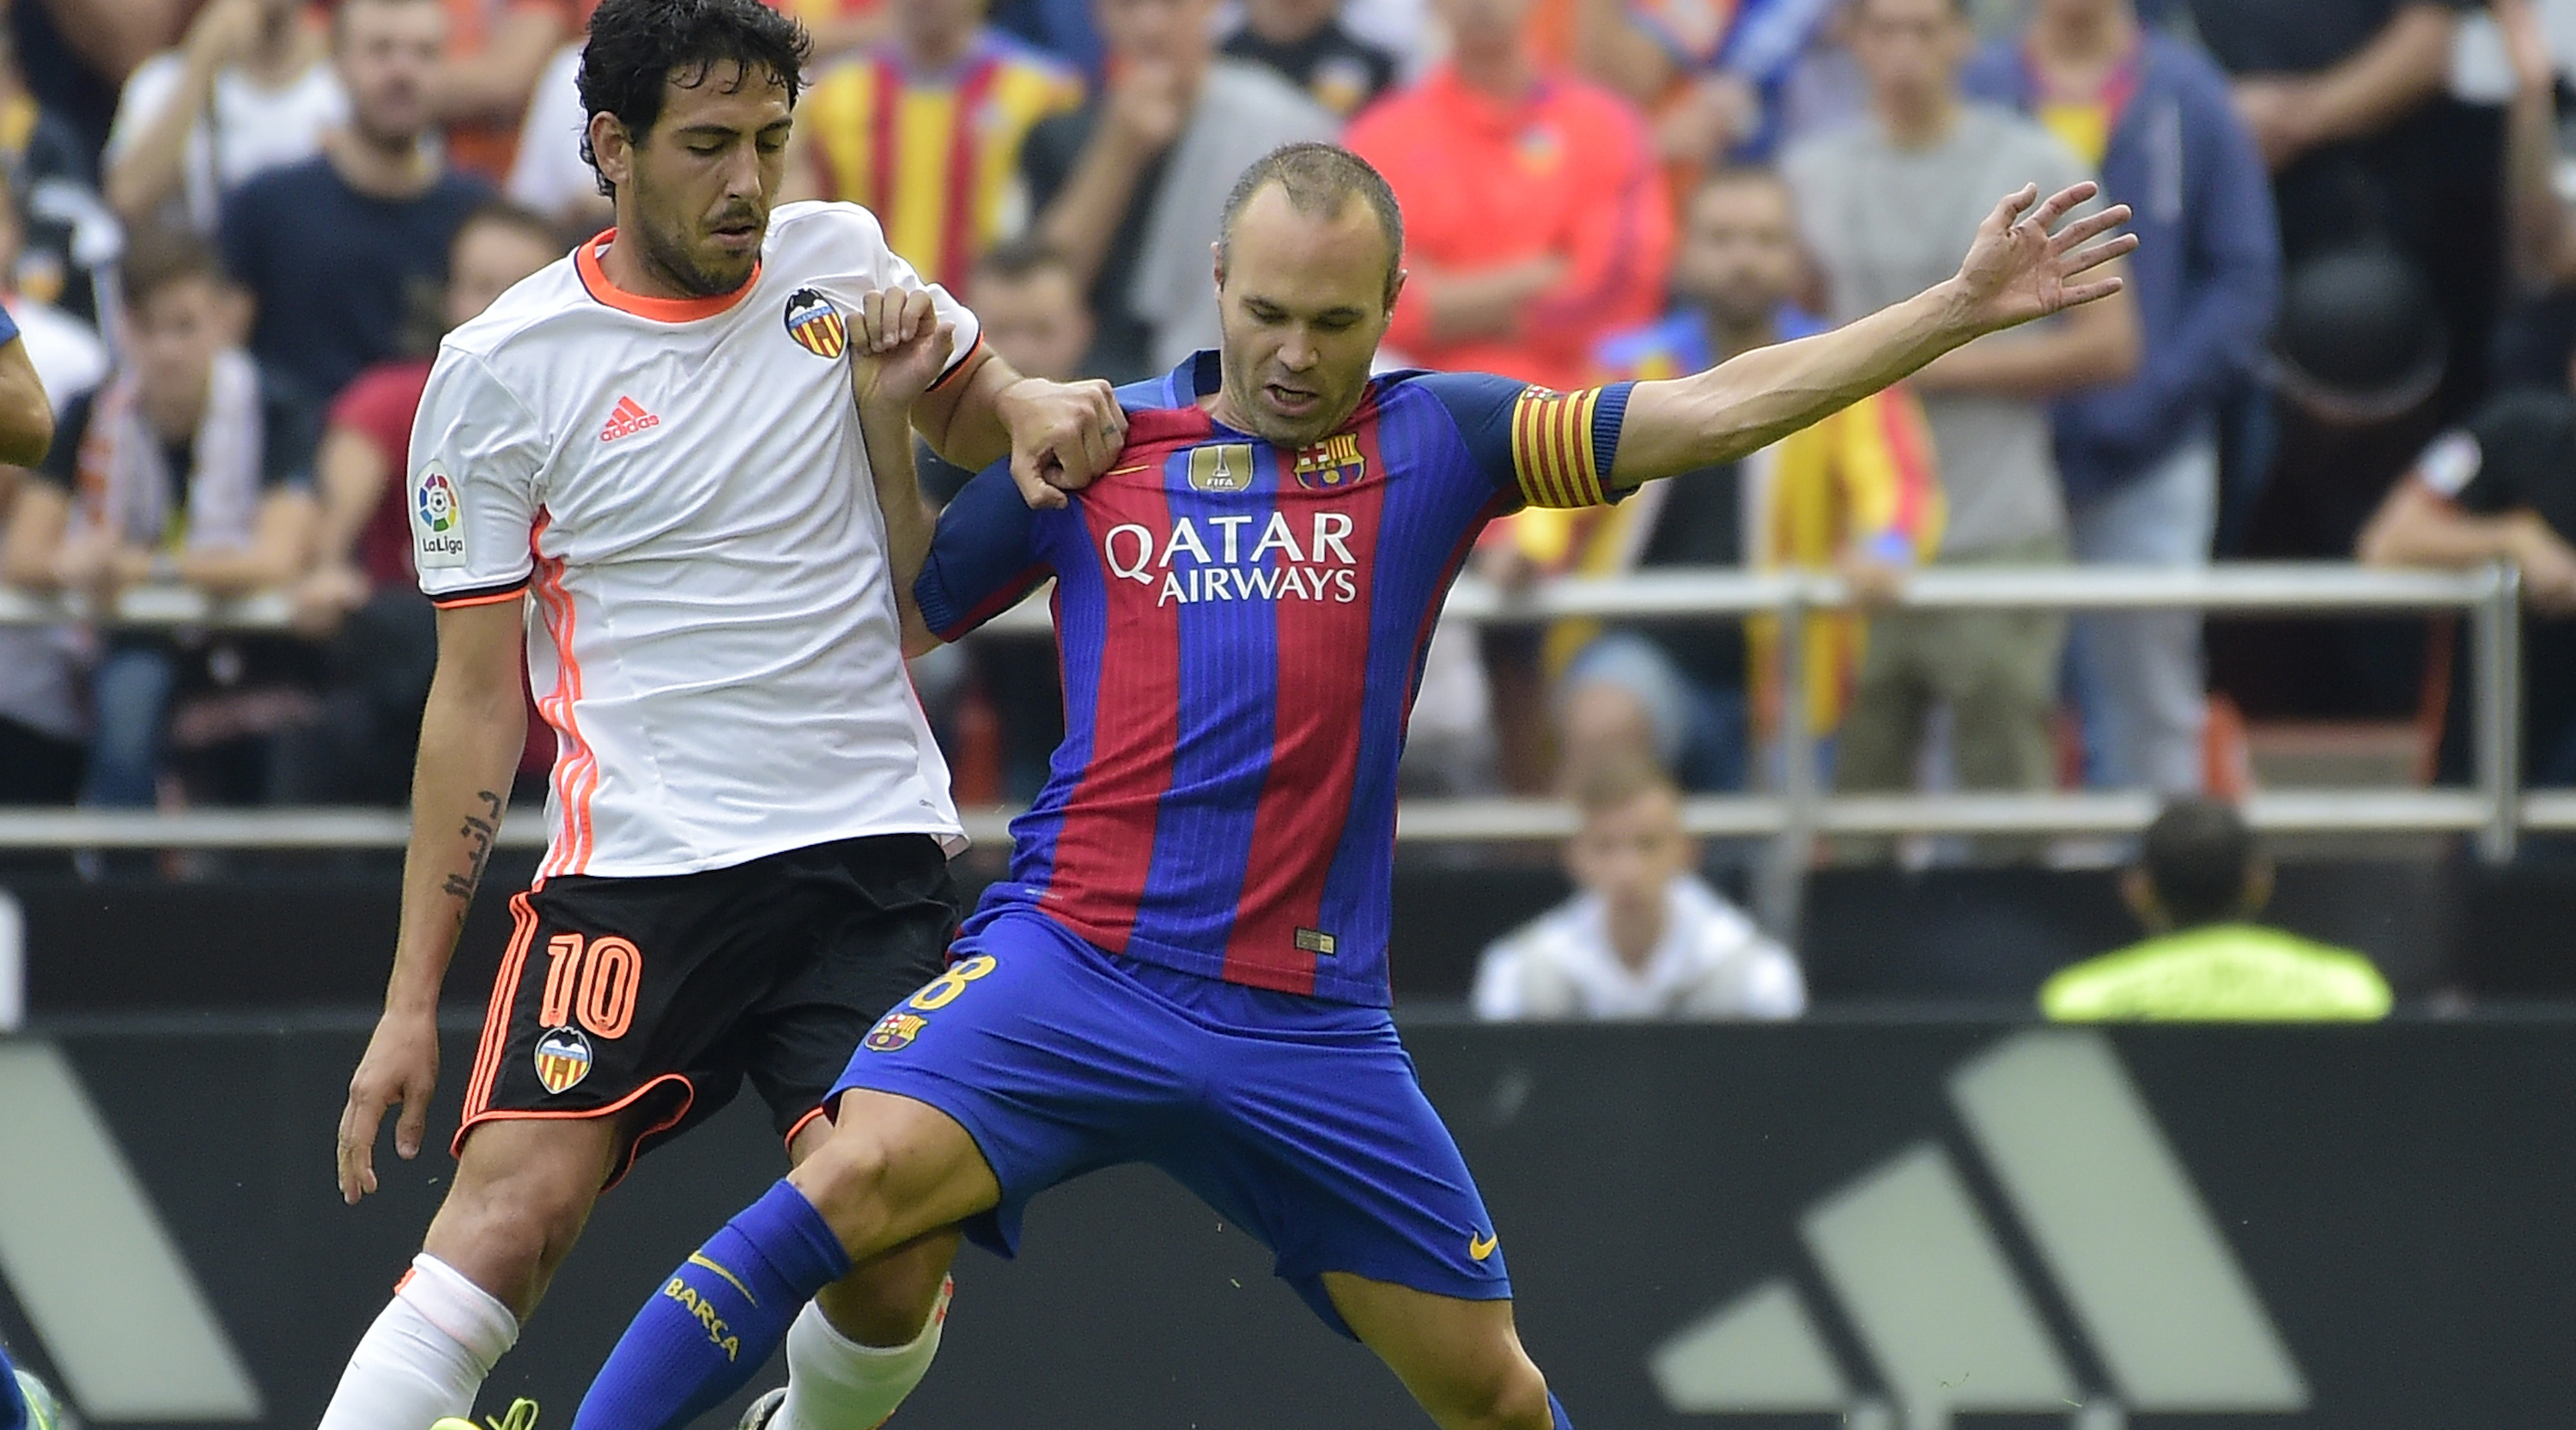 Valencia's midfielder Dani Parejo (L) vies with Barcelona's midfielder Andres Iniesta during the Spanish league football match between Valencia CF and FC Barcelona at the Mestalla stadium in Valencia on October 22, 2016. / AFP / JOSE JORDAN (Photo credit should read JOSE JORDAN/AFP/Getty Images)